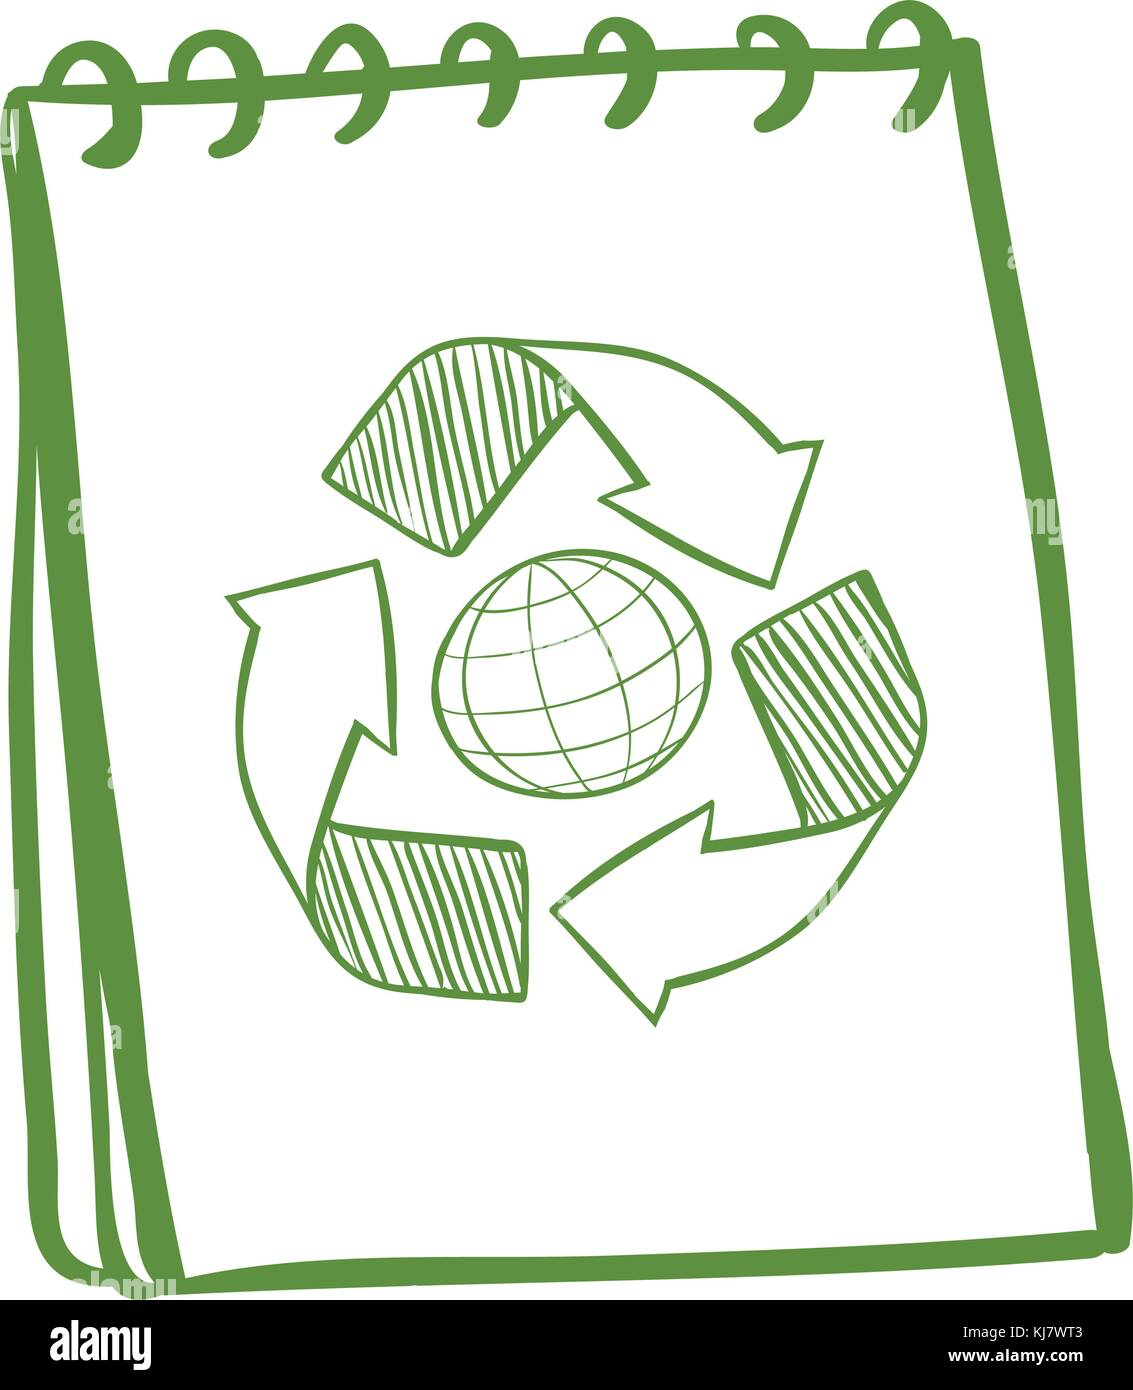 Illustration Of A Green Notebook With A Drawing Of The Recycle